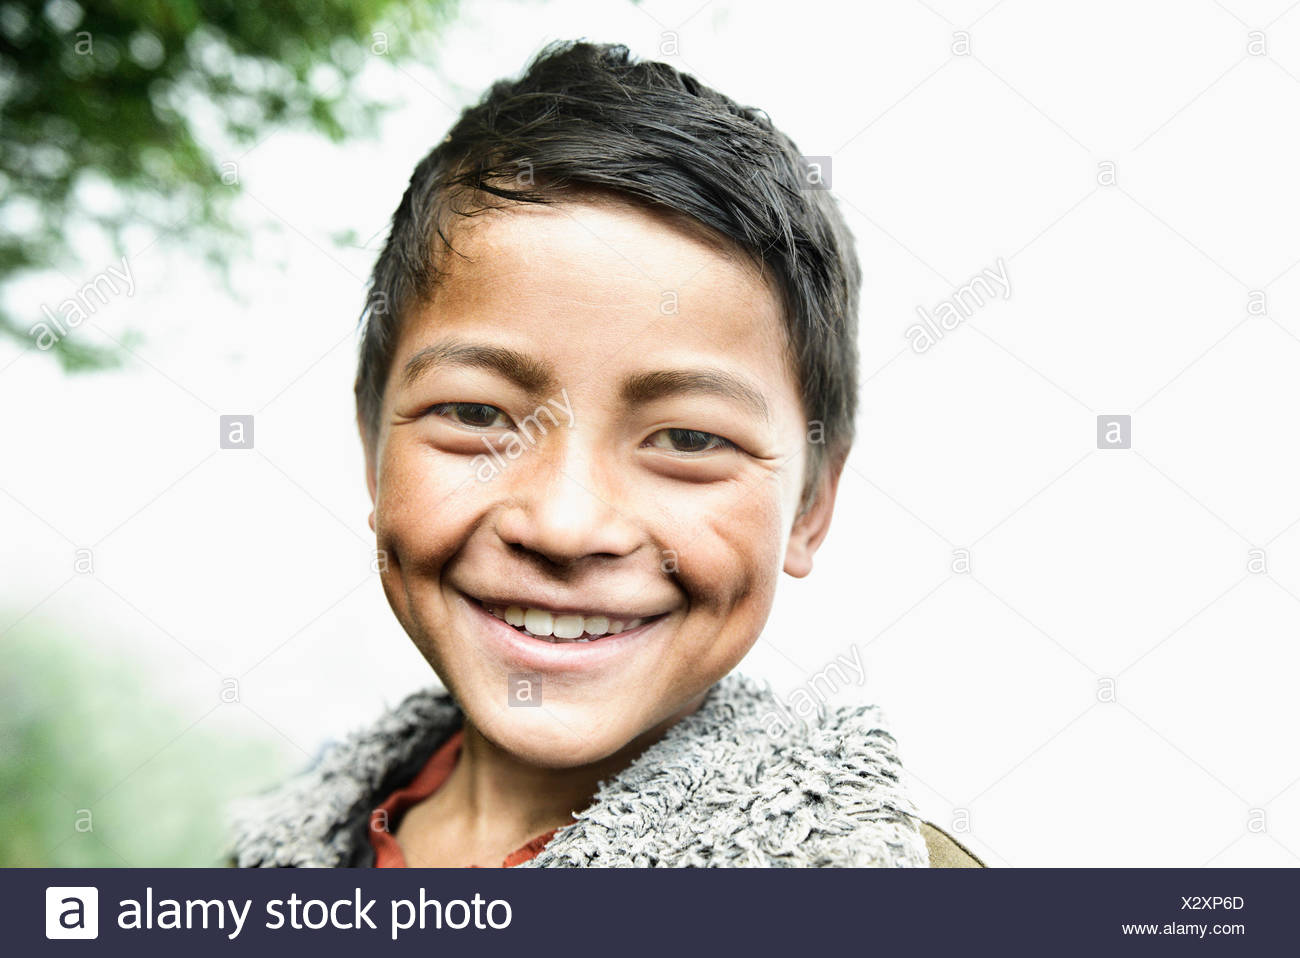 Portrait of a teenage boy smiling, Nepal - Stock Image